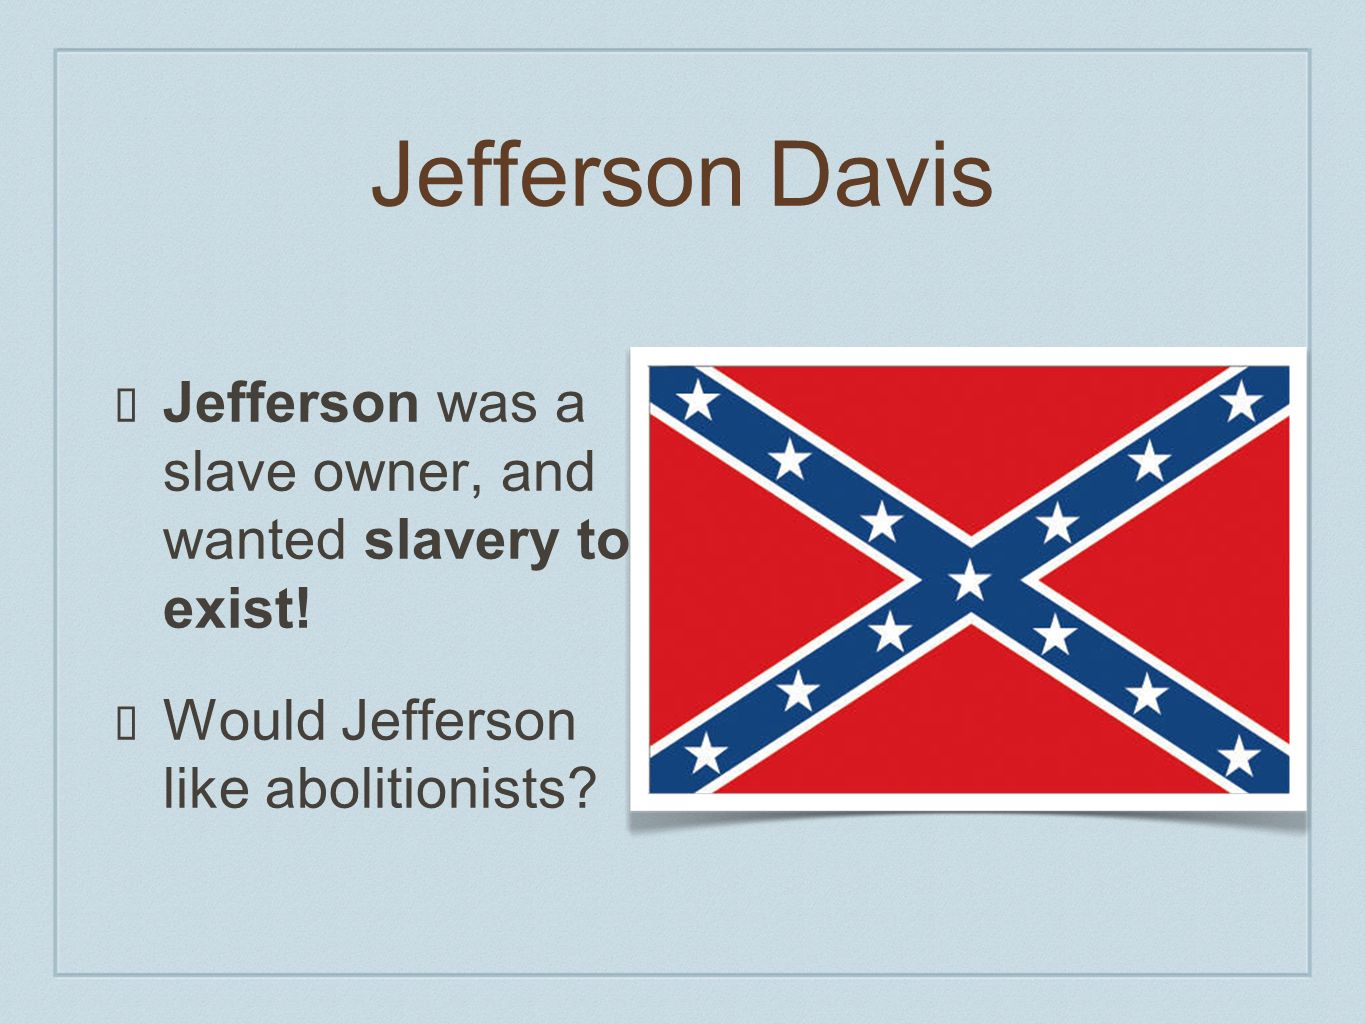 Jefferson Davis Jefferson was a slave owner, and wanted slavery to exist.